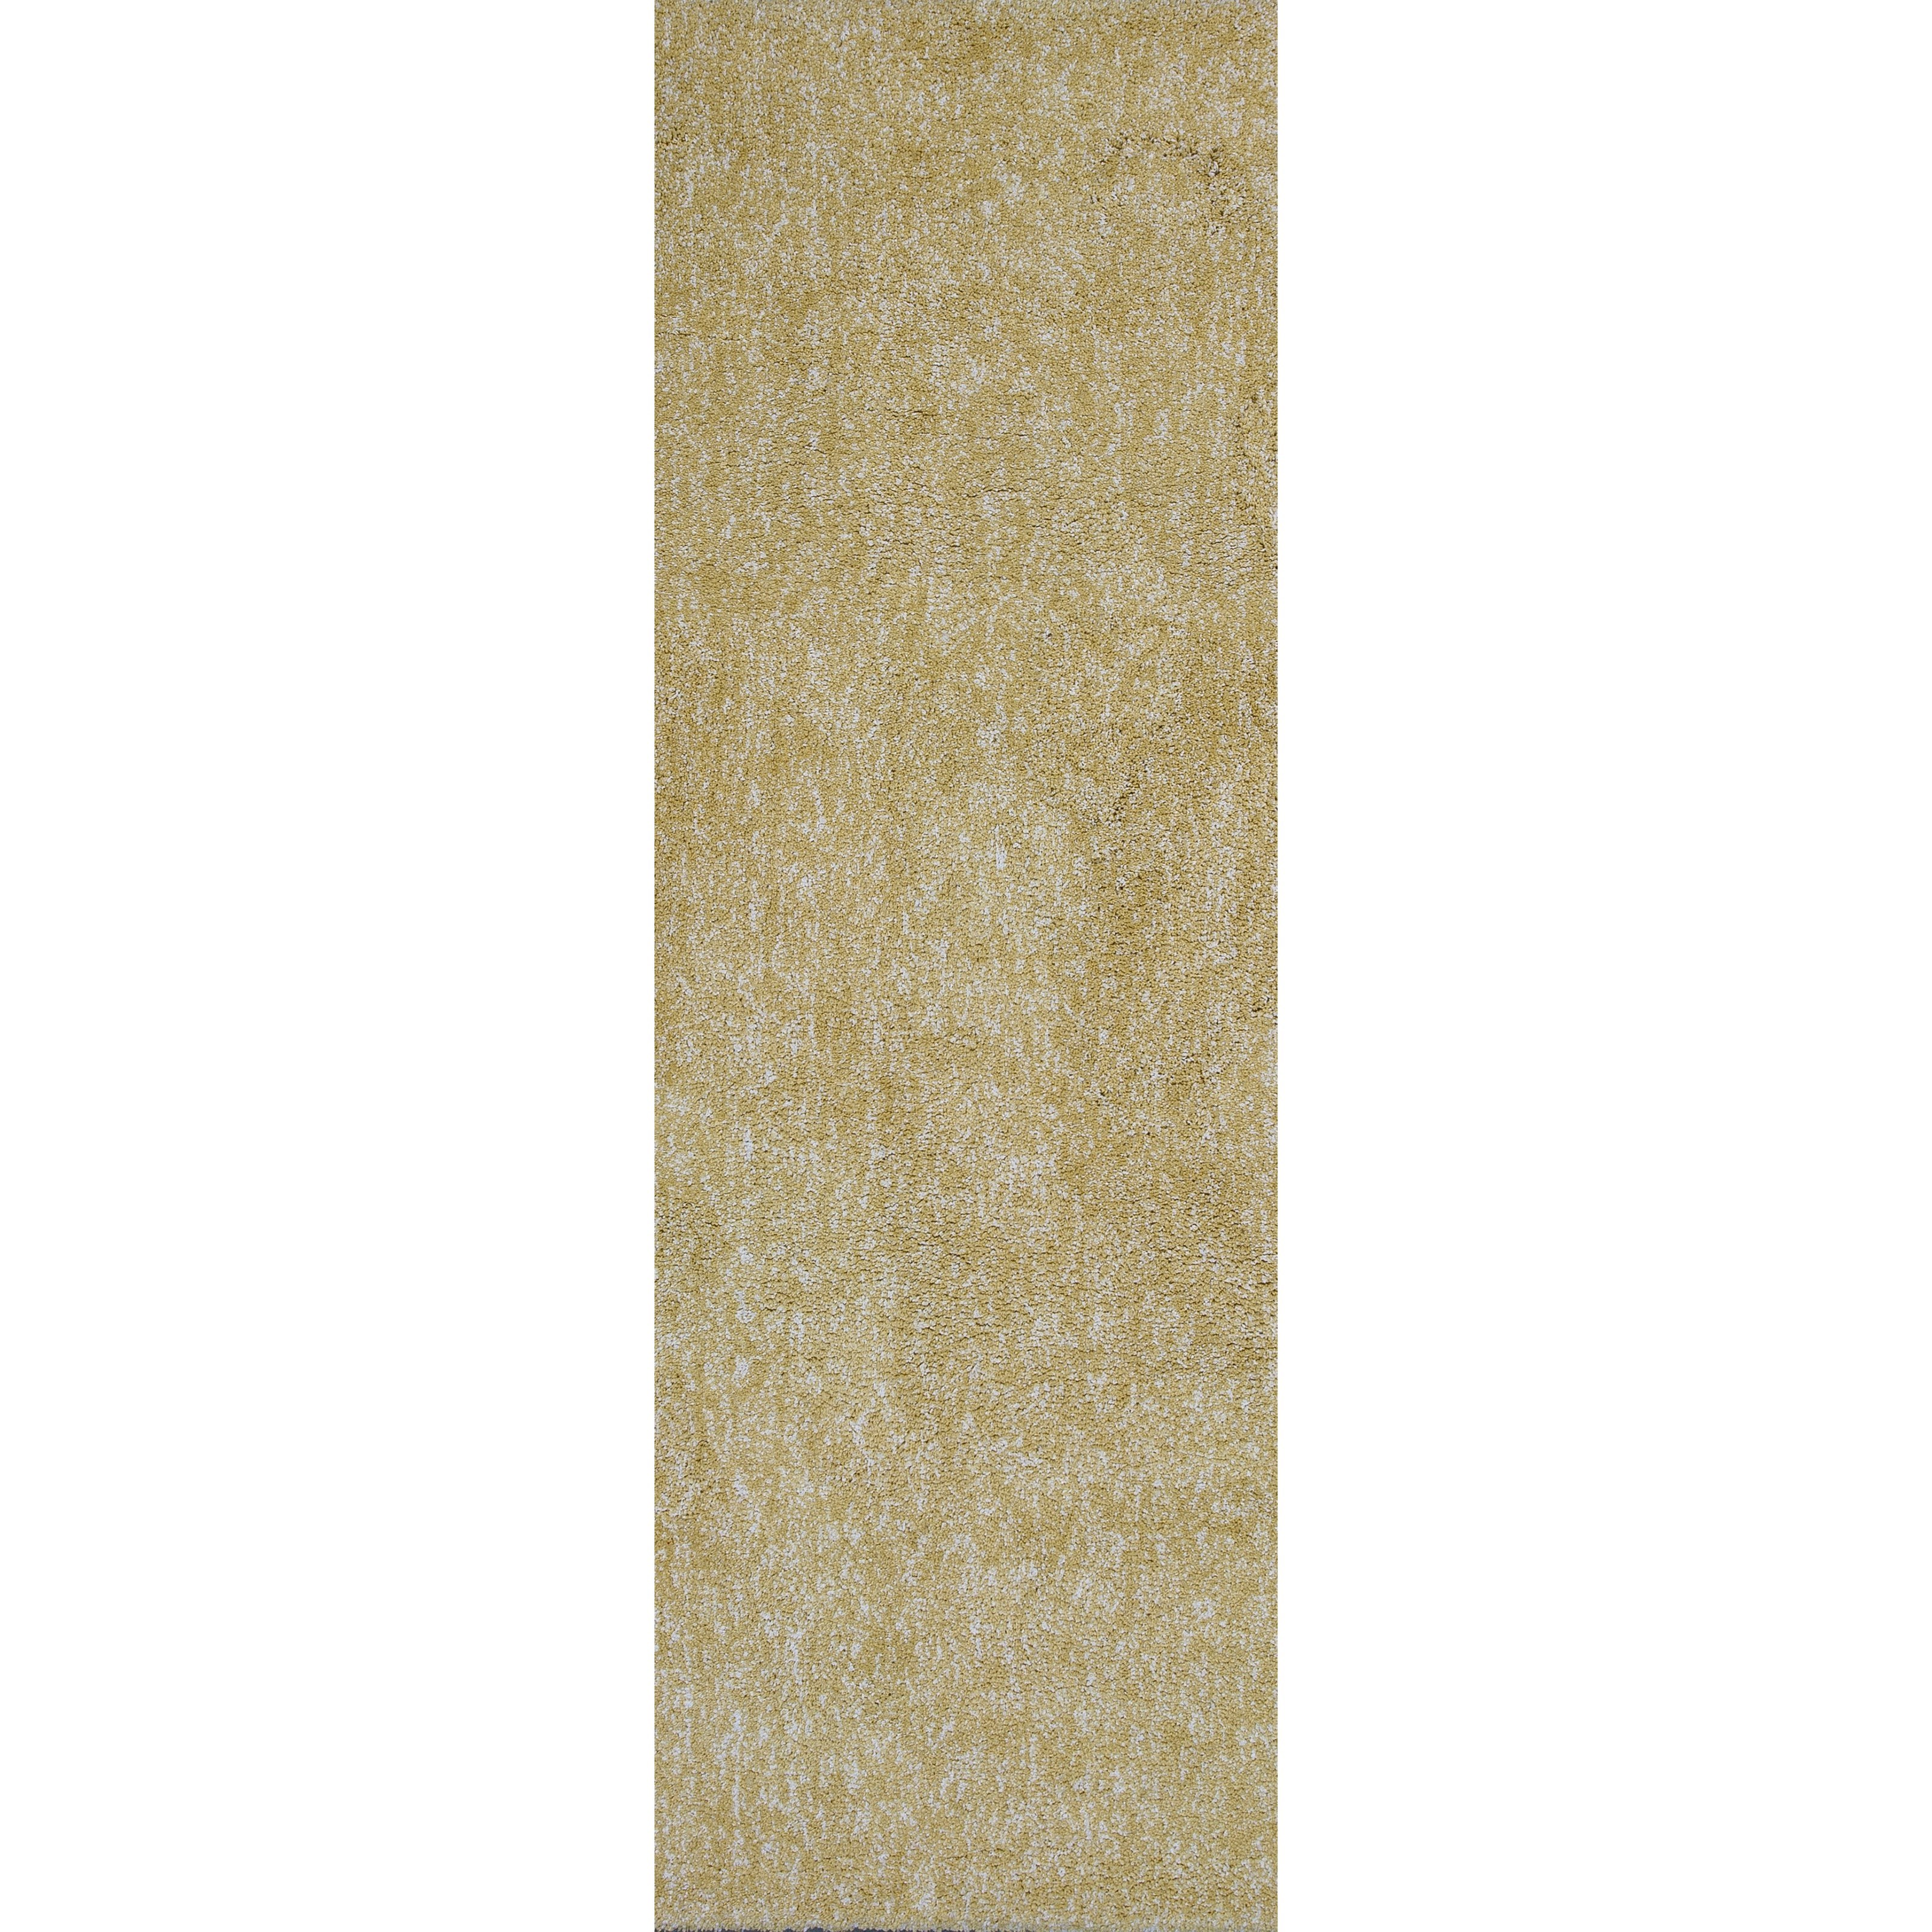 "Bliss 2'3"" X 7'6"" Yellow Heather Shag Area Rug by Kas at Zak's Home"